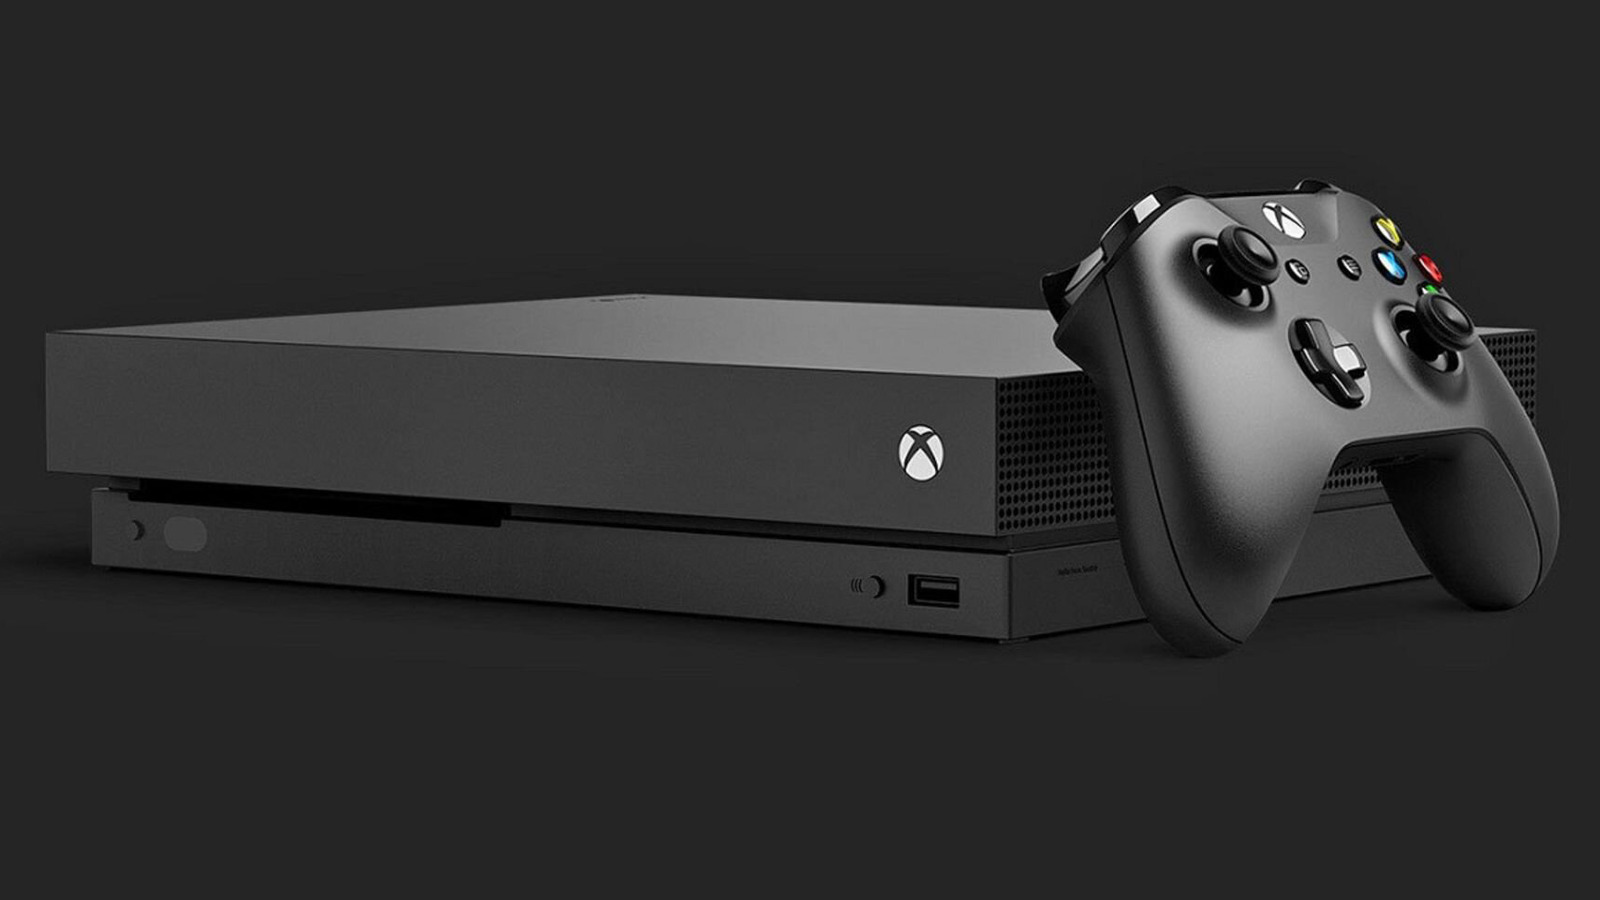 These are the worst Xbox One games of 2020